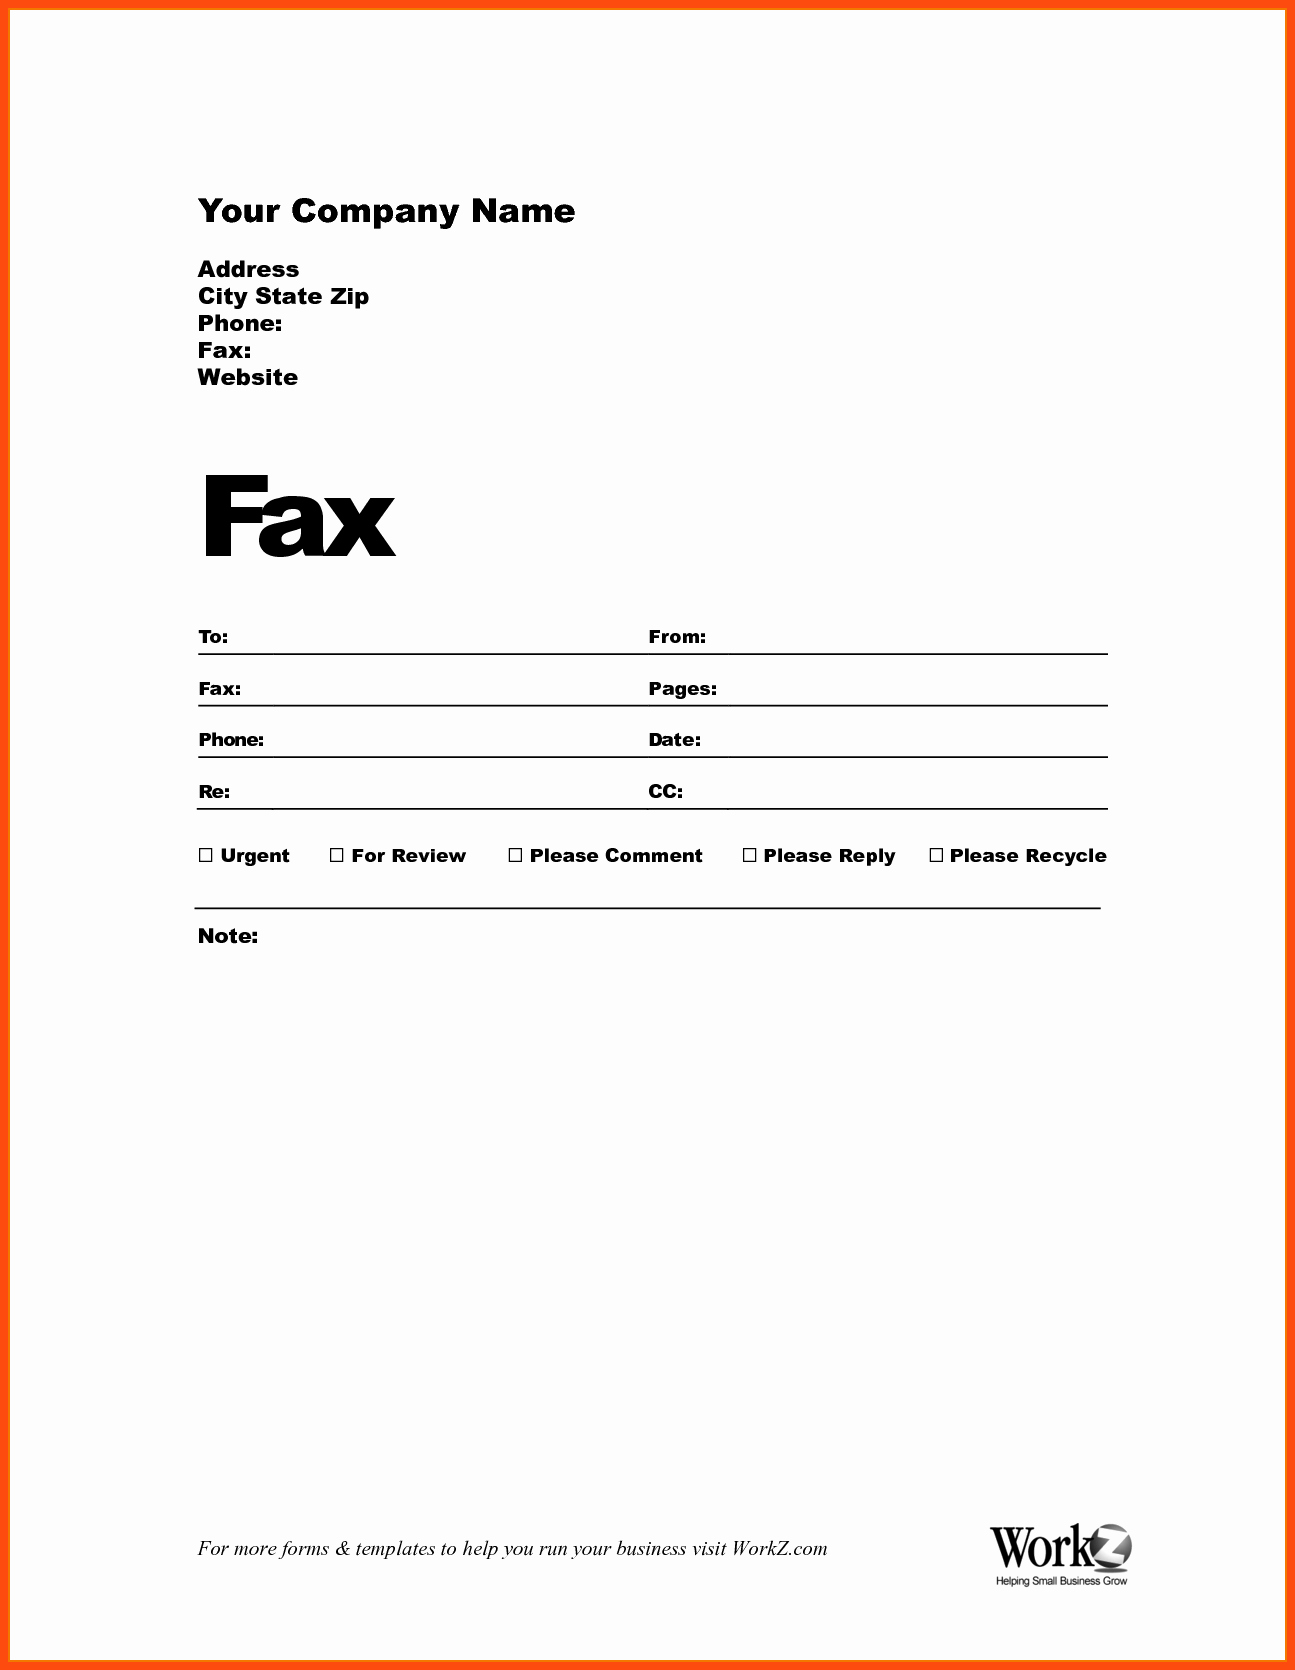 Sample Fax Cover Sheet Word Elegant How to Fill Out A Fax Cover Sheet